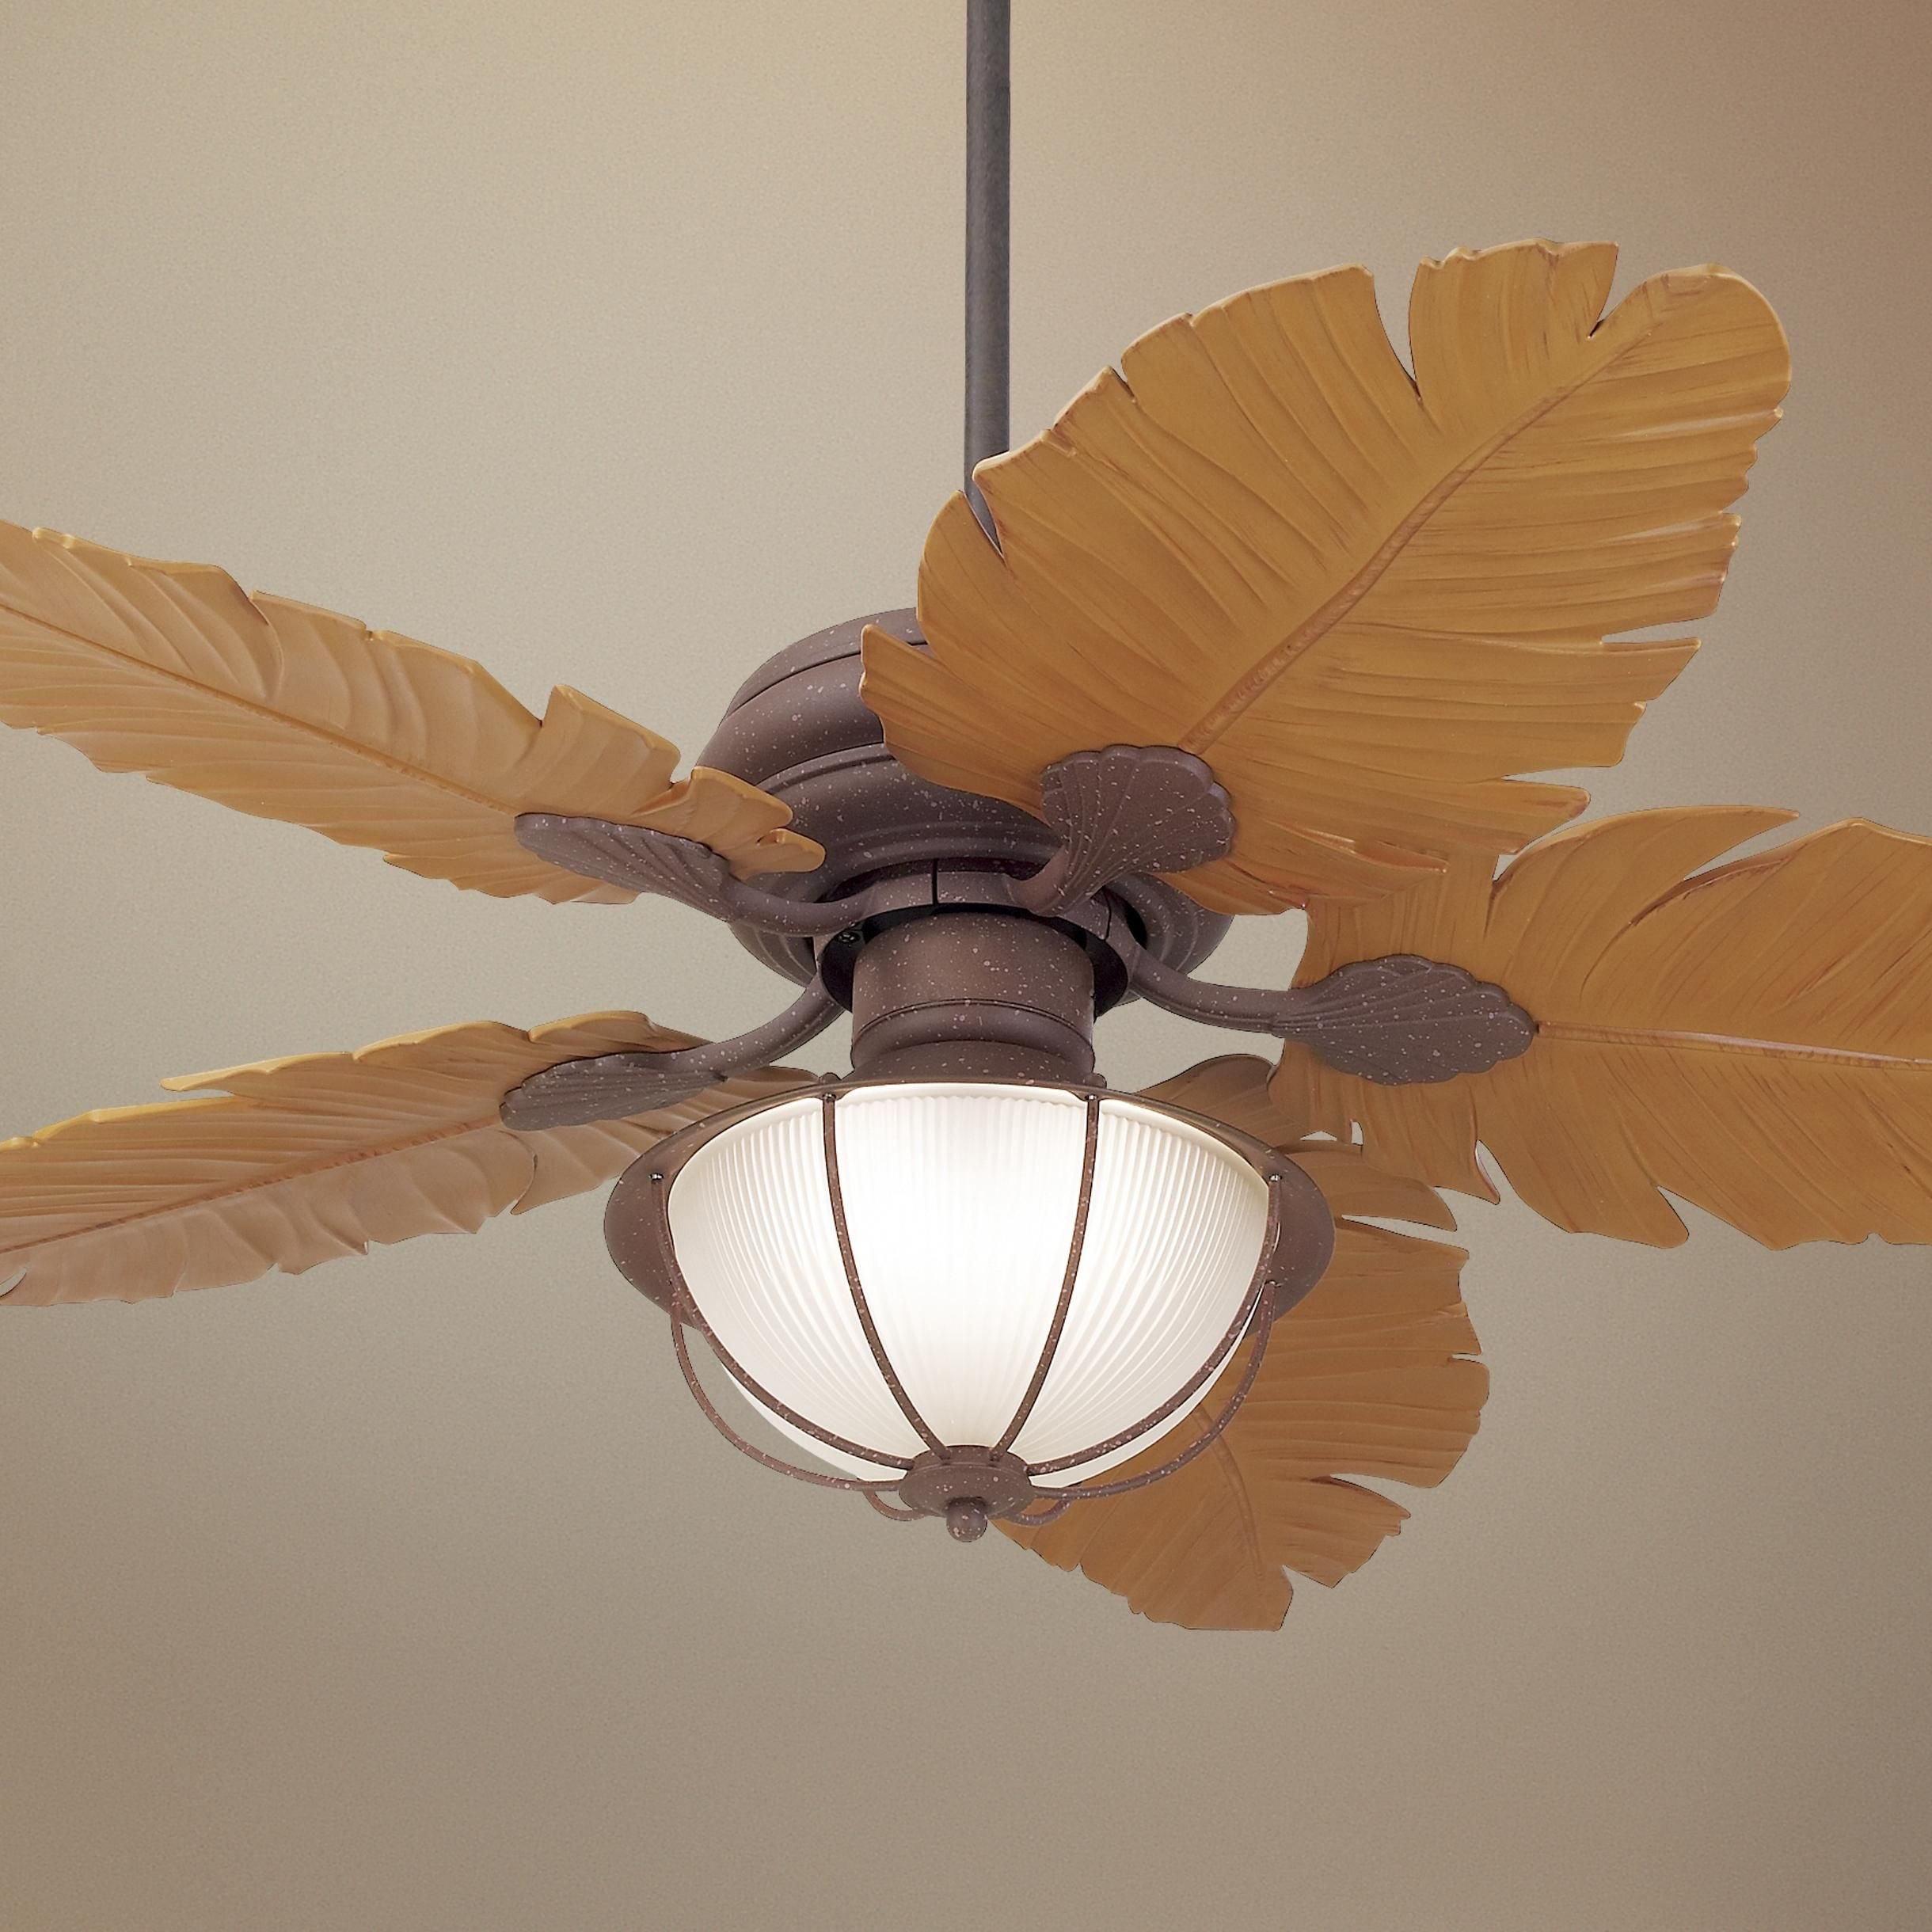 "Tropical Outdoor Ceiling Fan: 52"" Casa Vieja Tropical Leaf Ceiling Fan -"